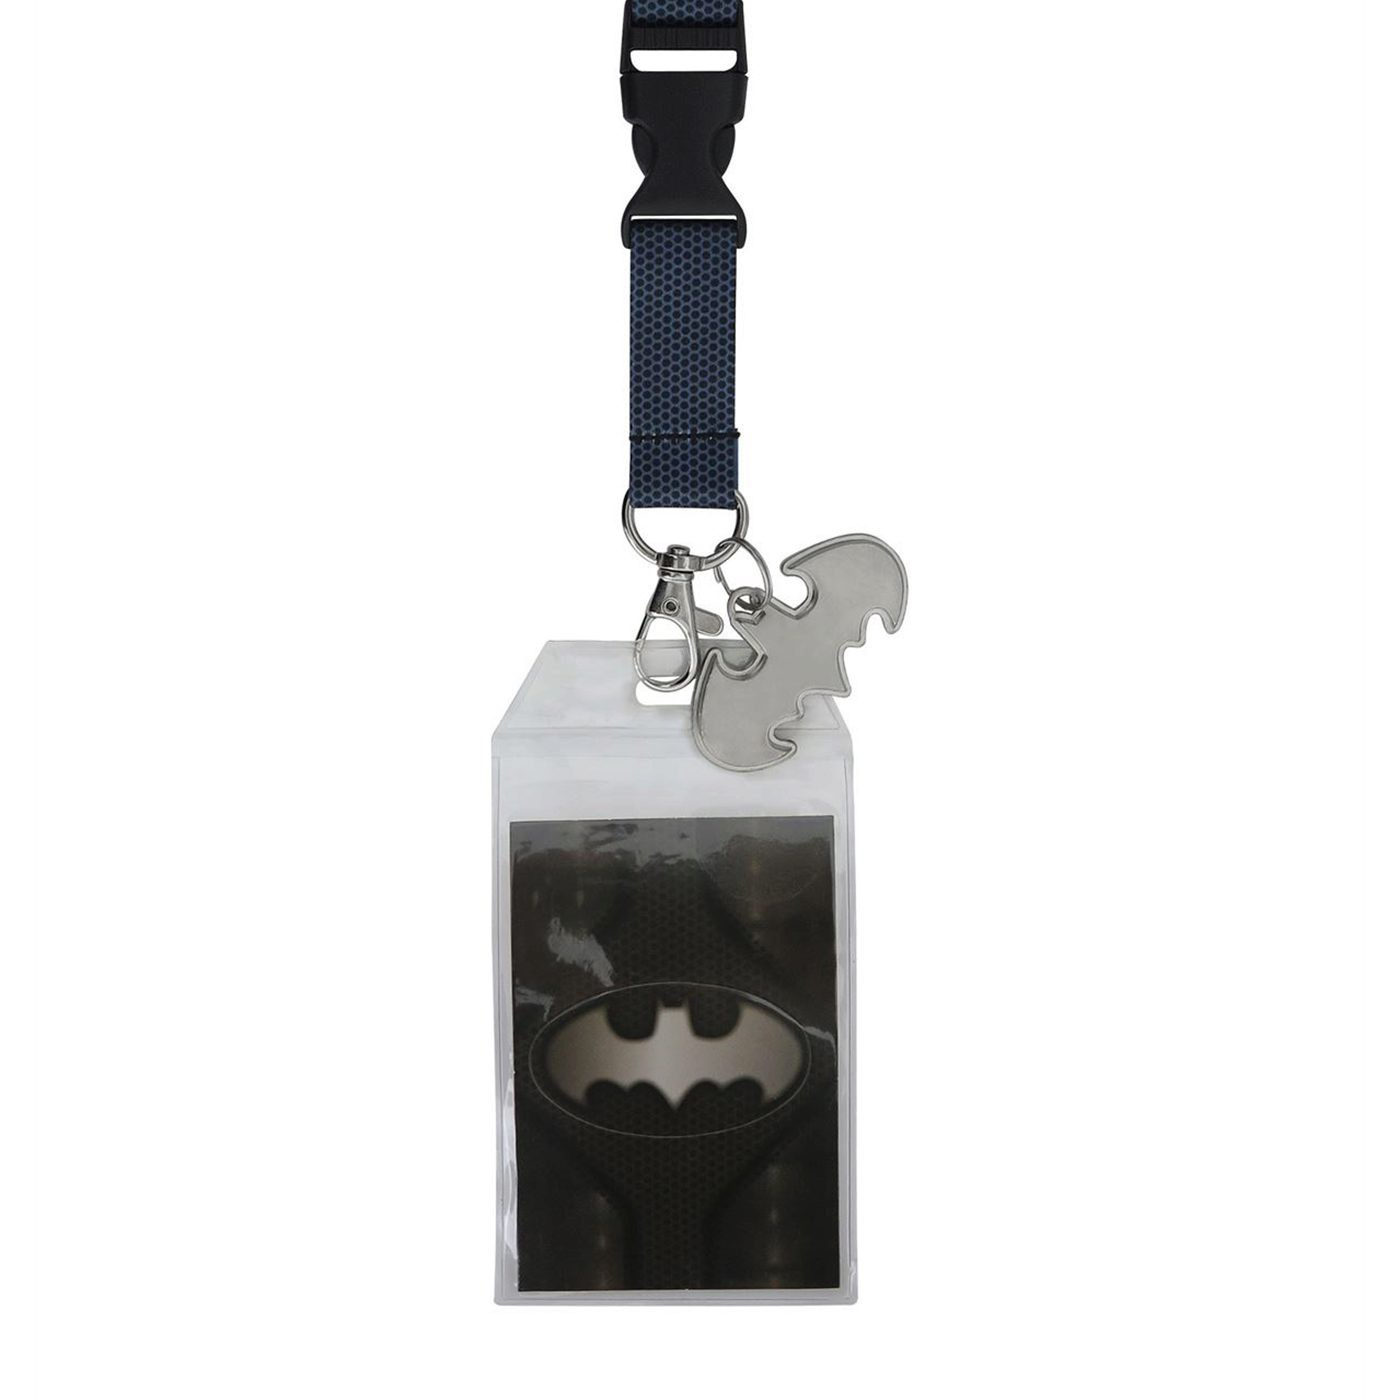 Batman Suit Up Lanyard with Metal Charm